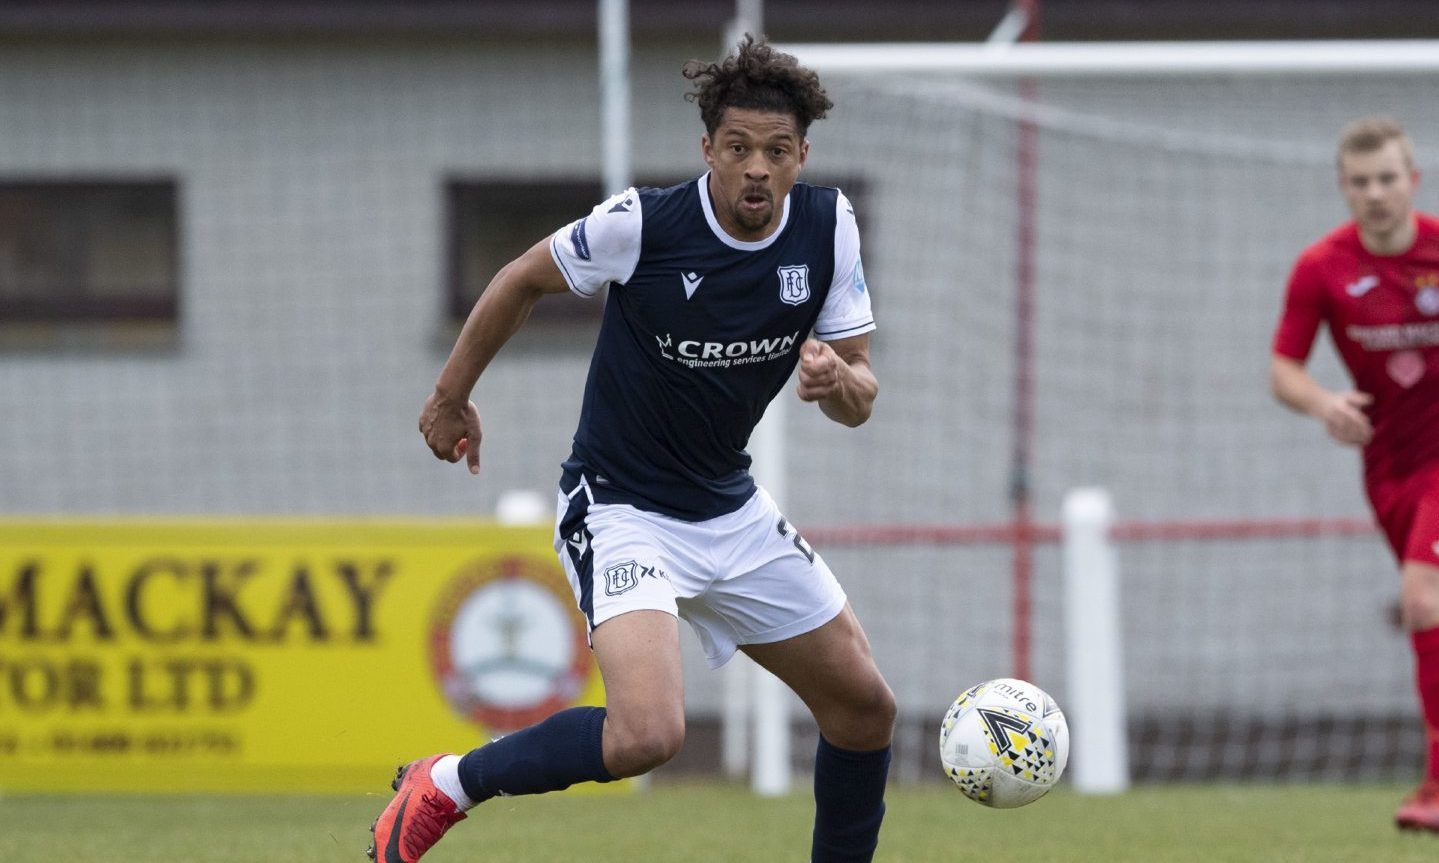 Dundee injuries: Osman Sow could return to face Raith Rovers as James McPake delivers update on Alex Jakubiak